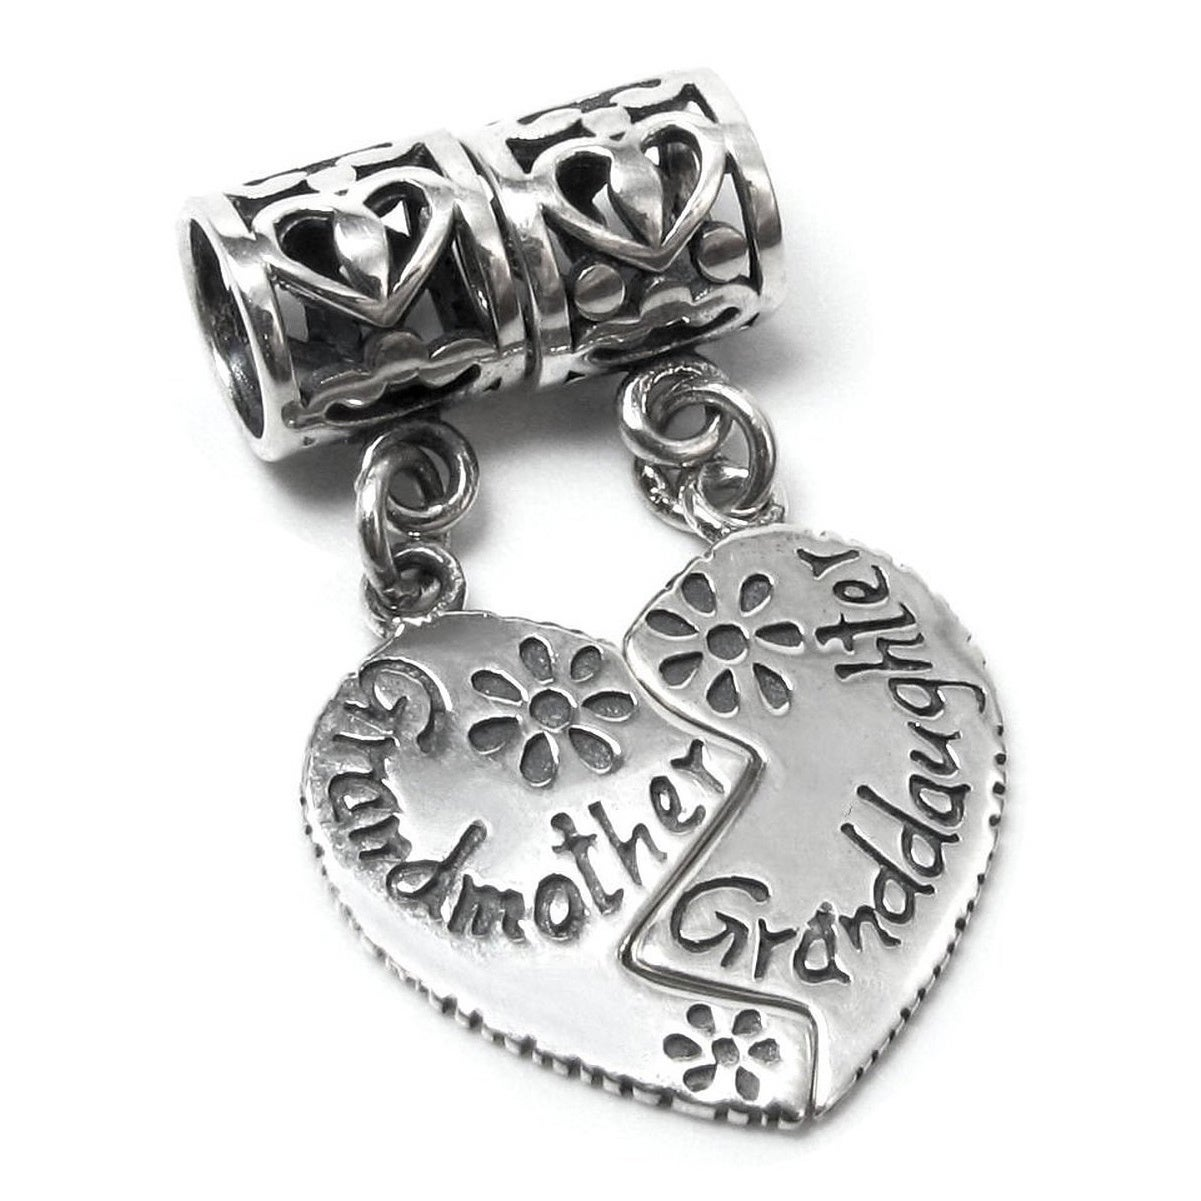 FILAGREE GRAND DAUGHTER GRANDDAUGHTER HEART CHARM 925 STERLING SILVER